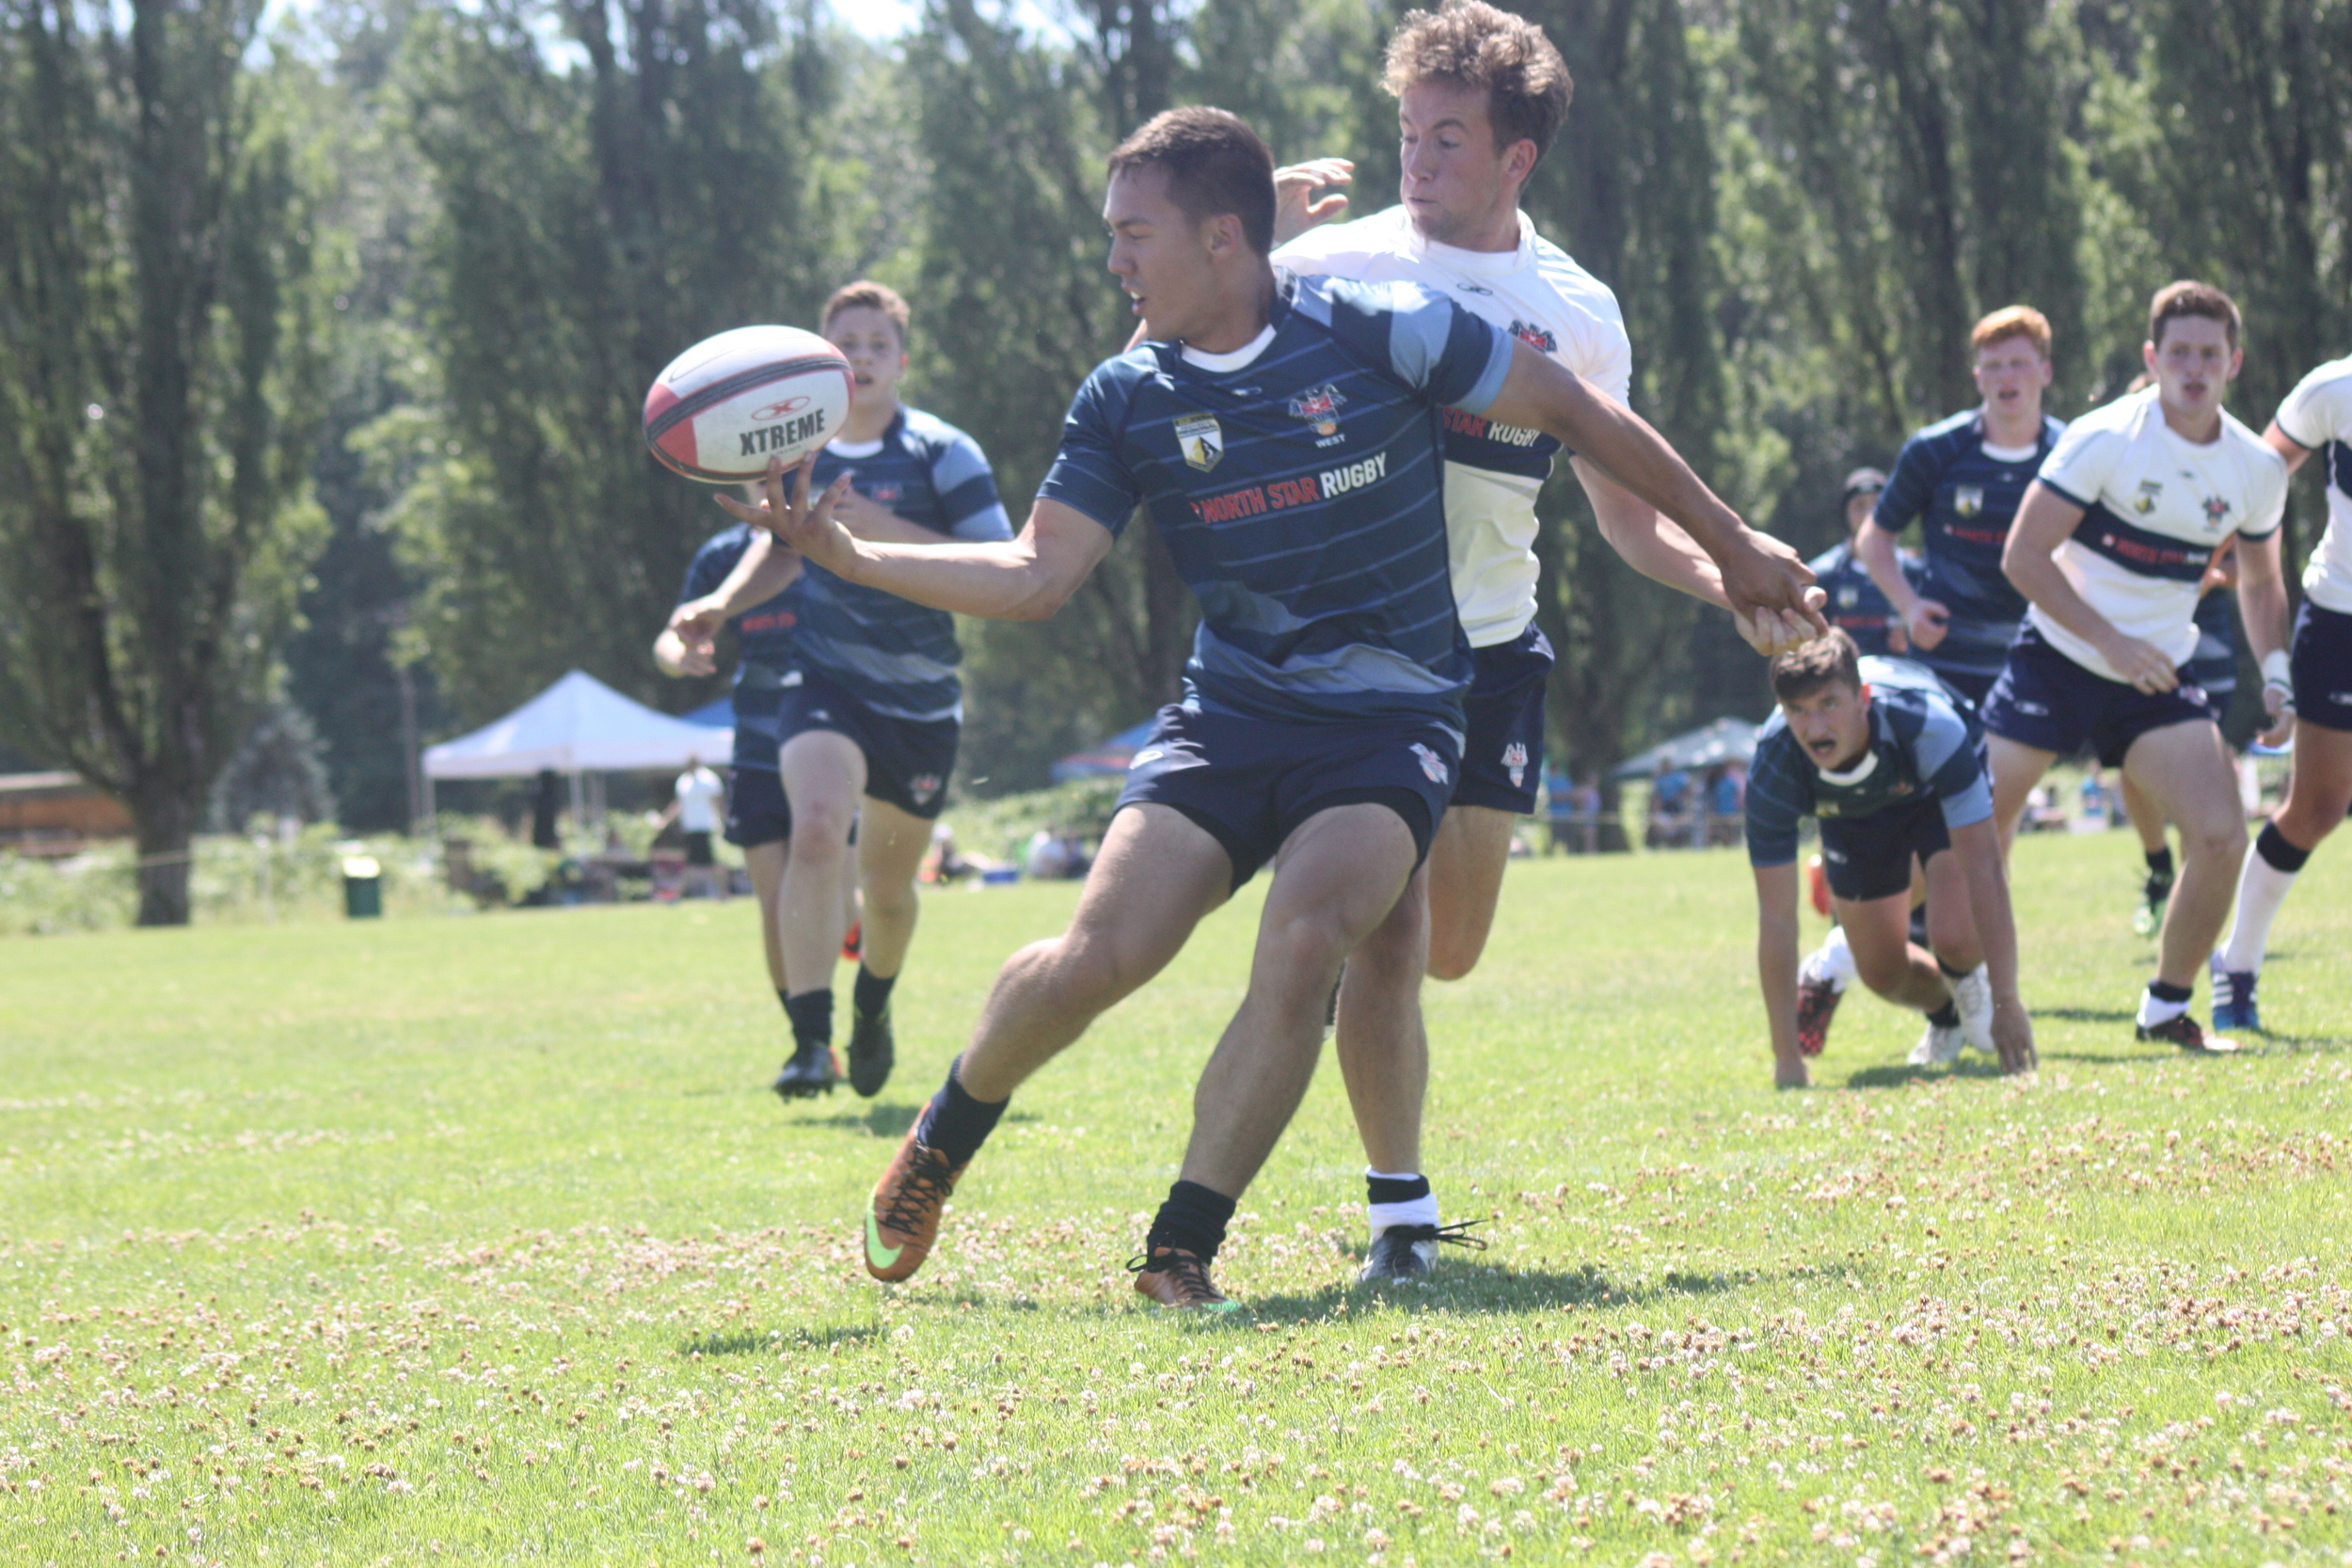 Vancouver North stars teams battle it out at the Provincial Regional championships in burnaby